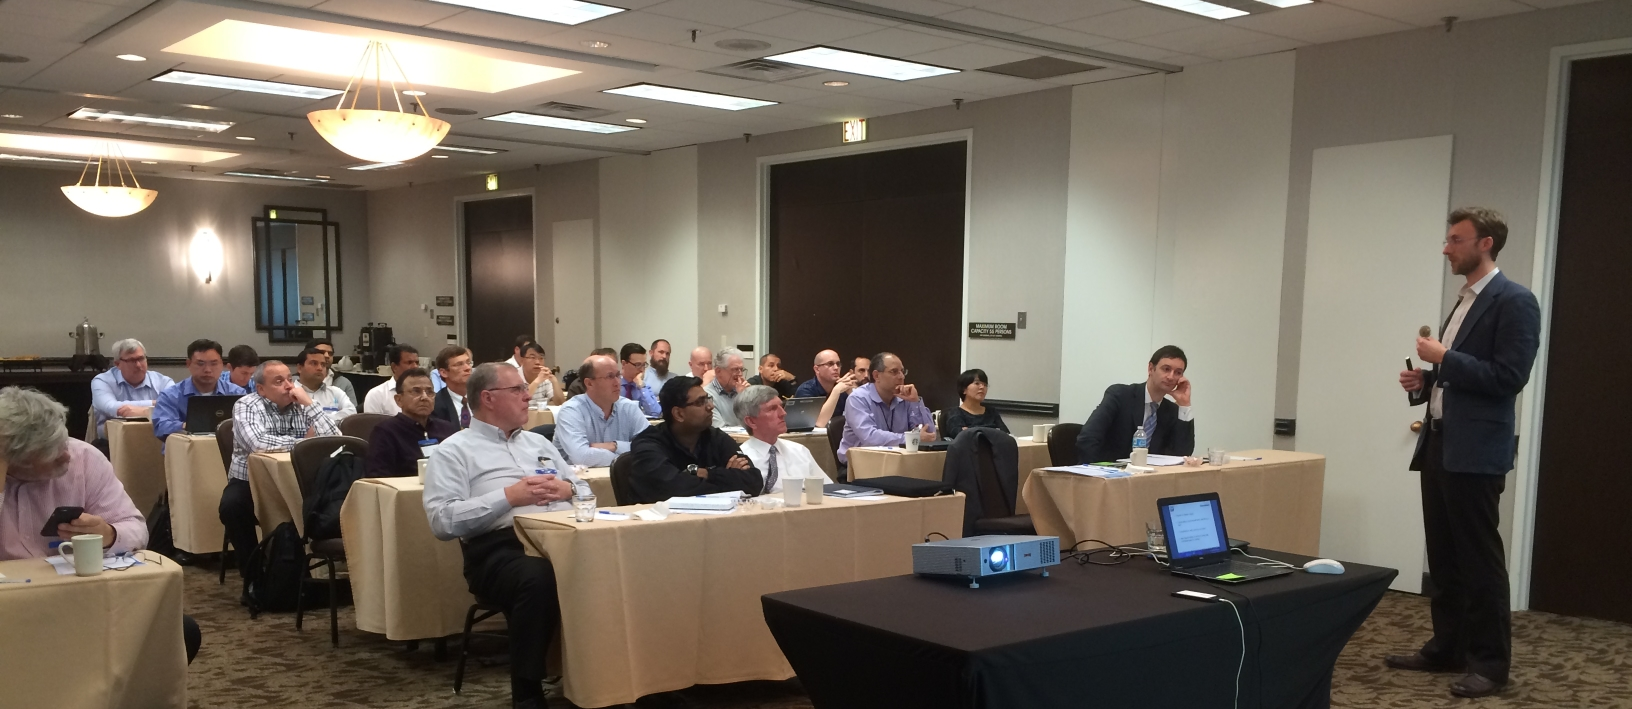 TWI's John Rothwell presents at the Houston workshop